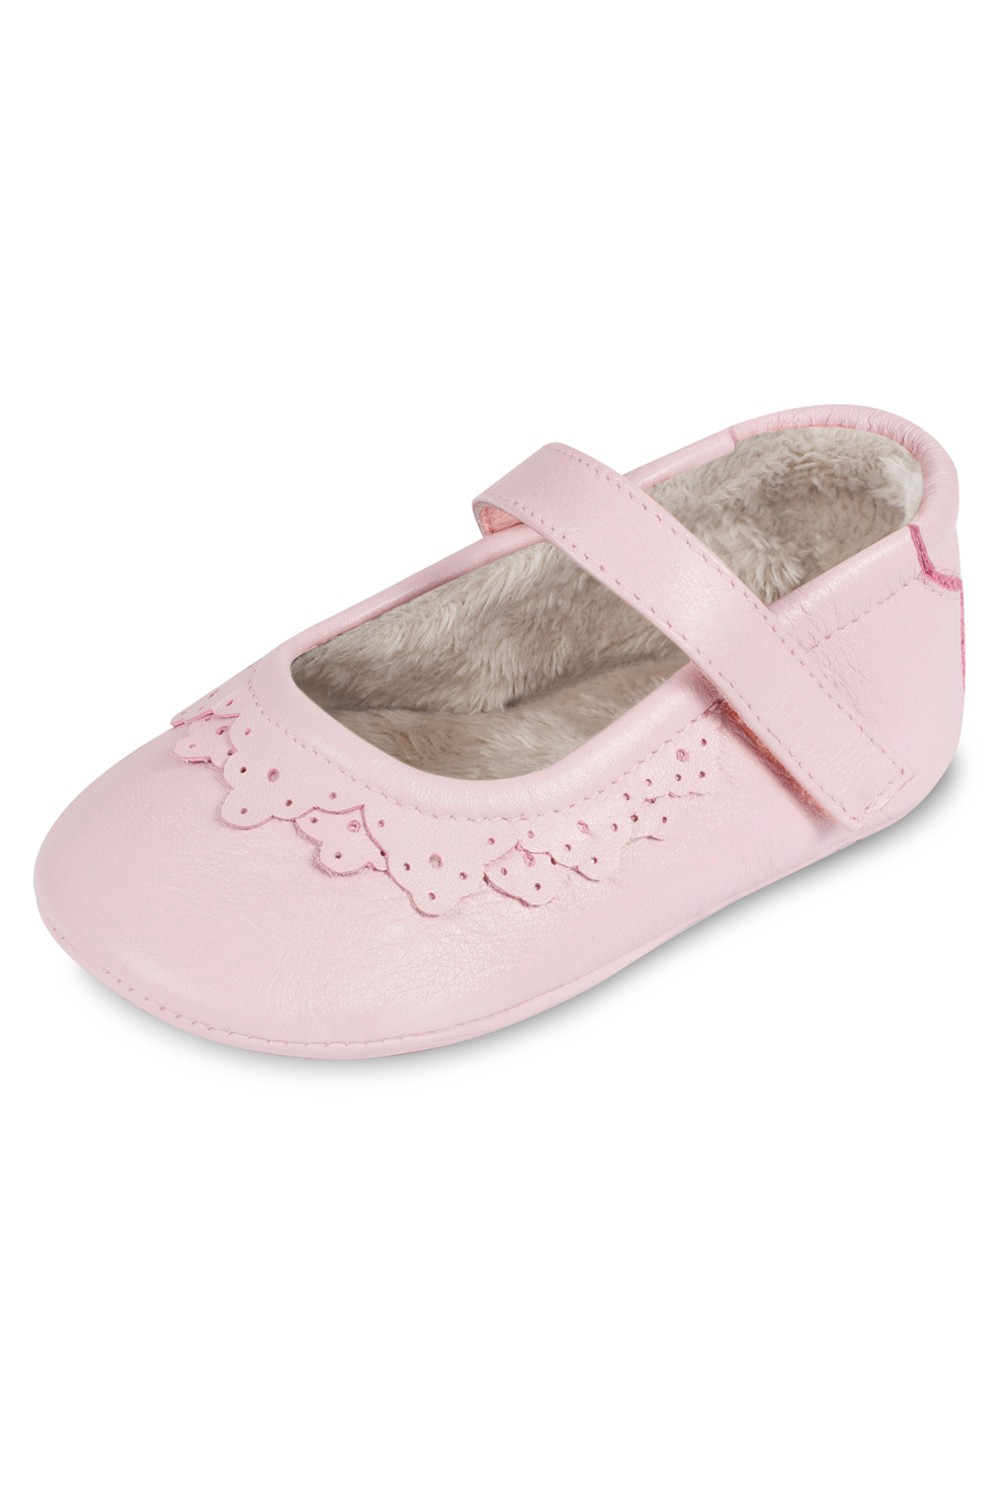 Sonatina Baby Ballet Flats Babies Fashion Shoes